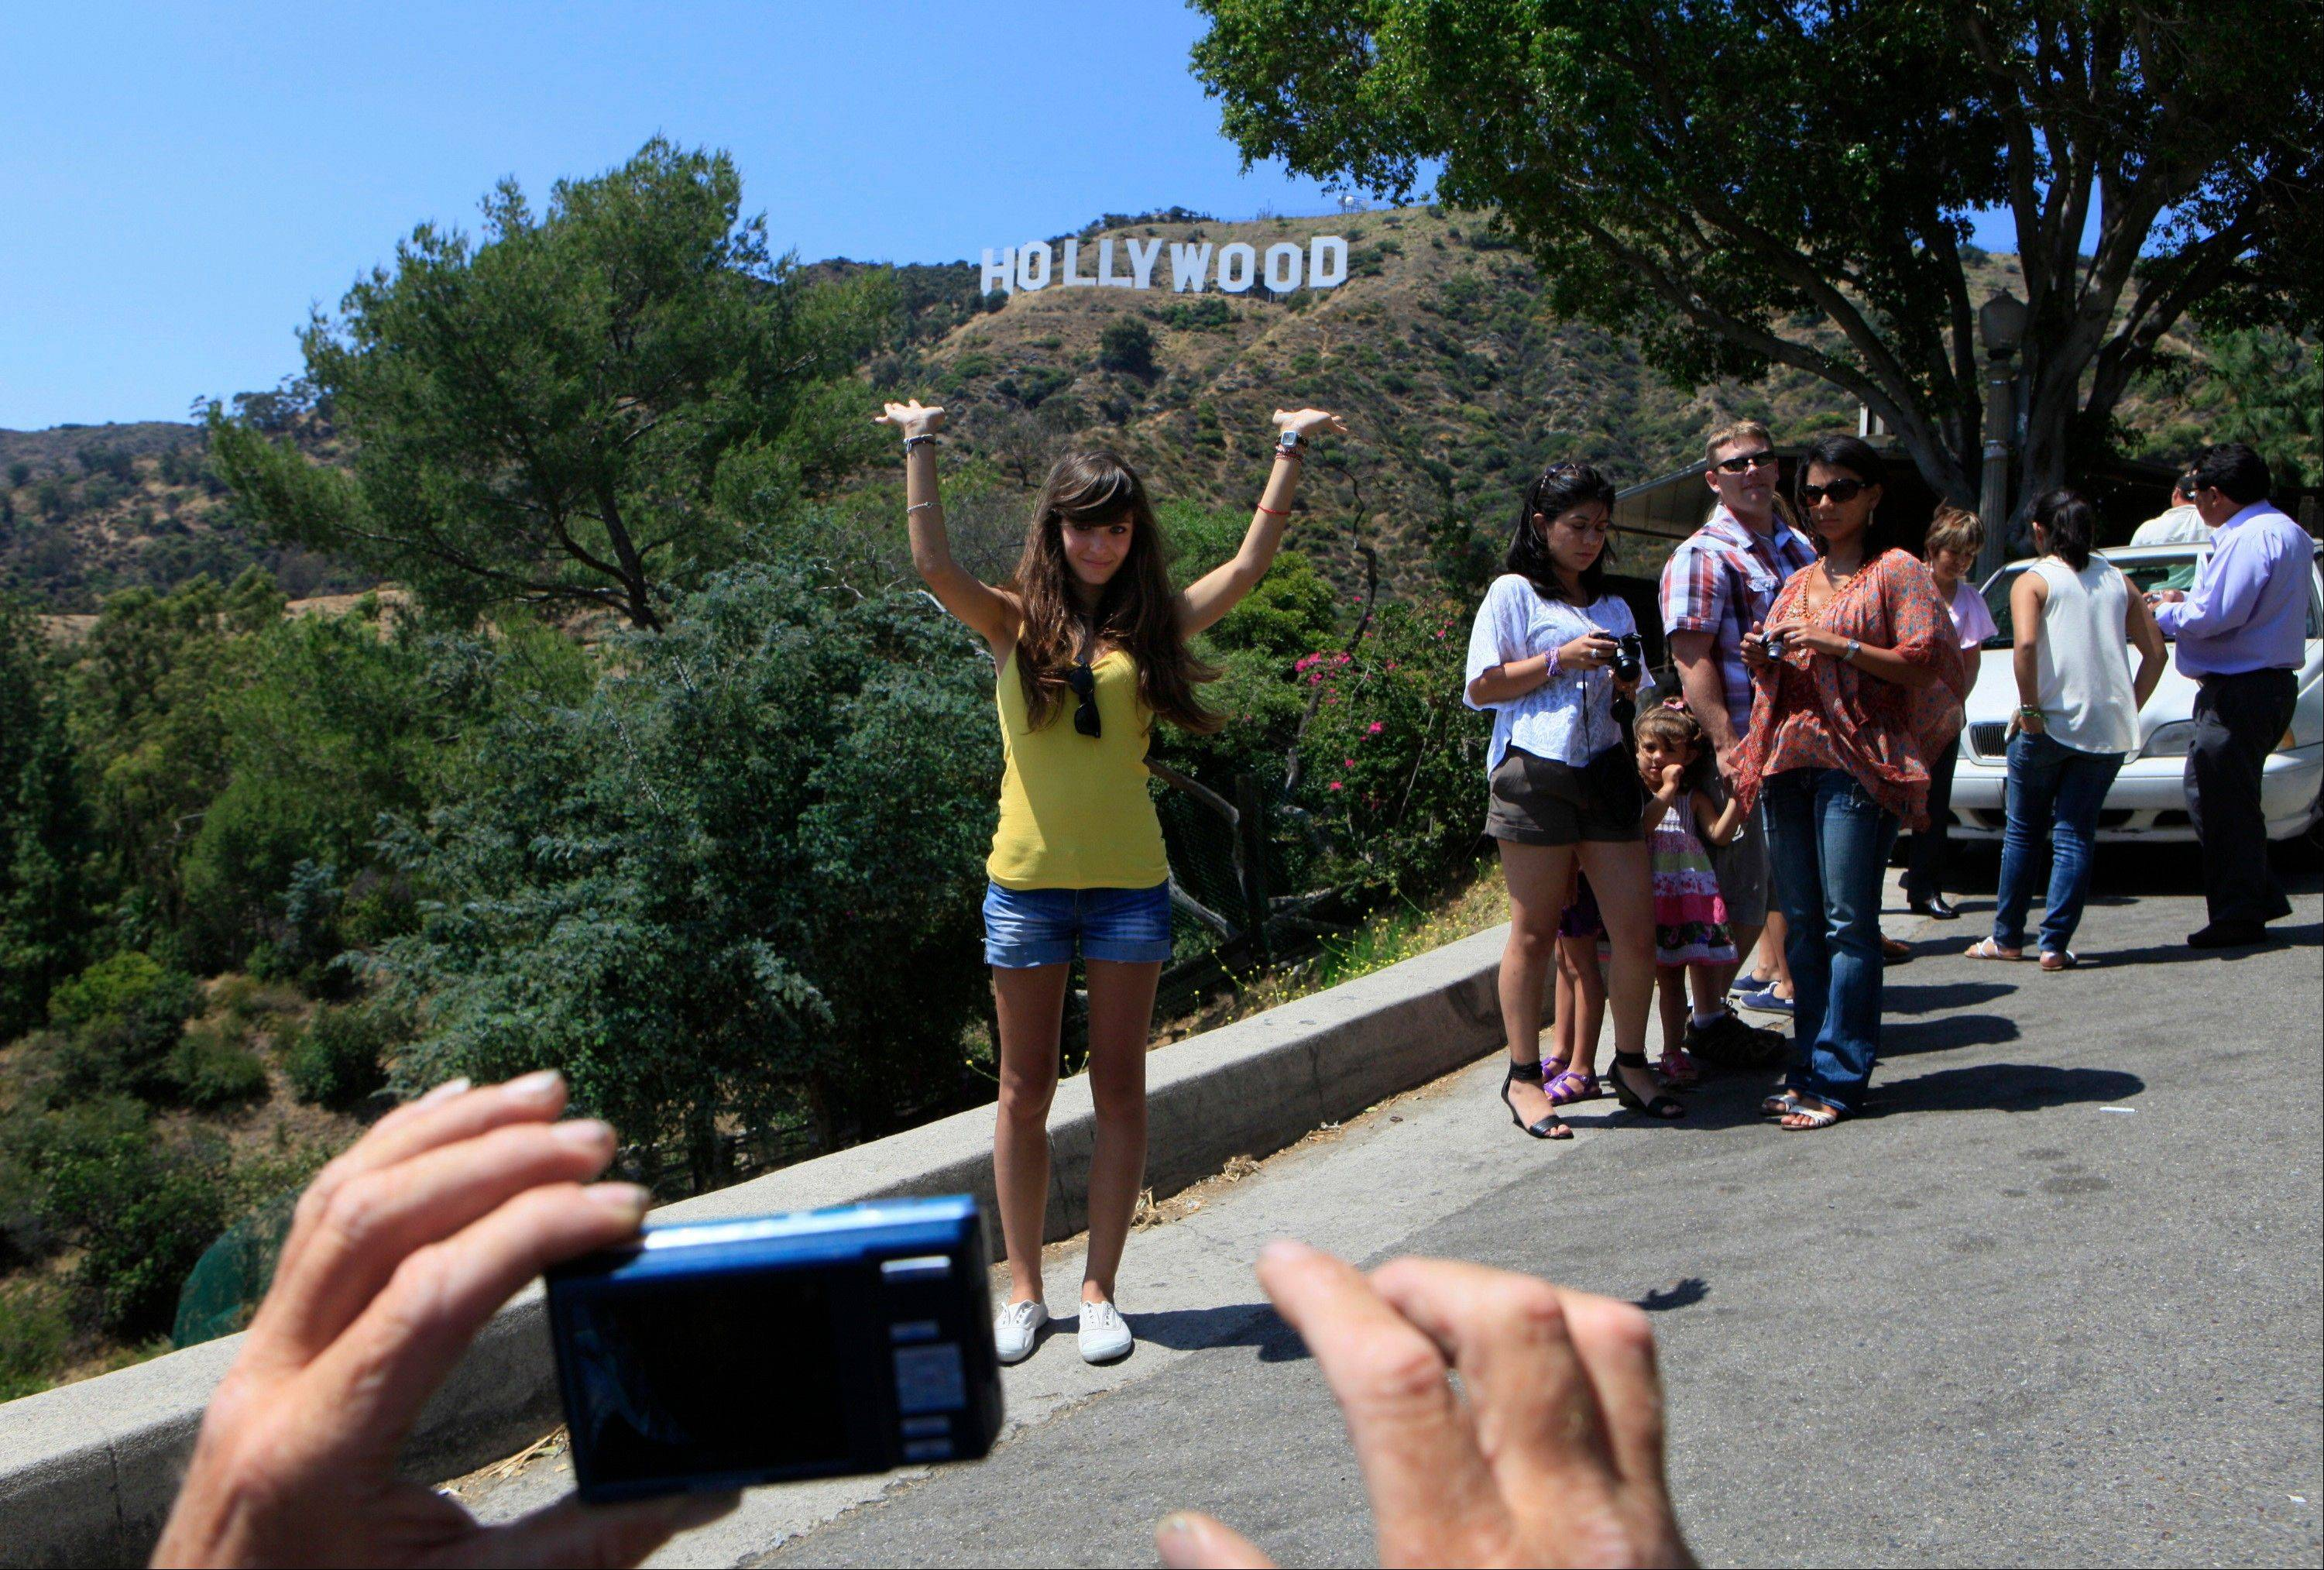 Tourists photograph each other on a hill with a view of the Hollywood sign in Los Angeles.